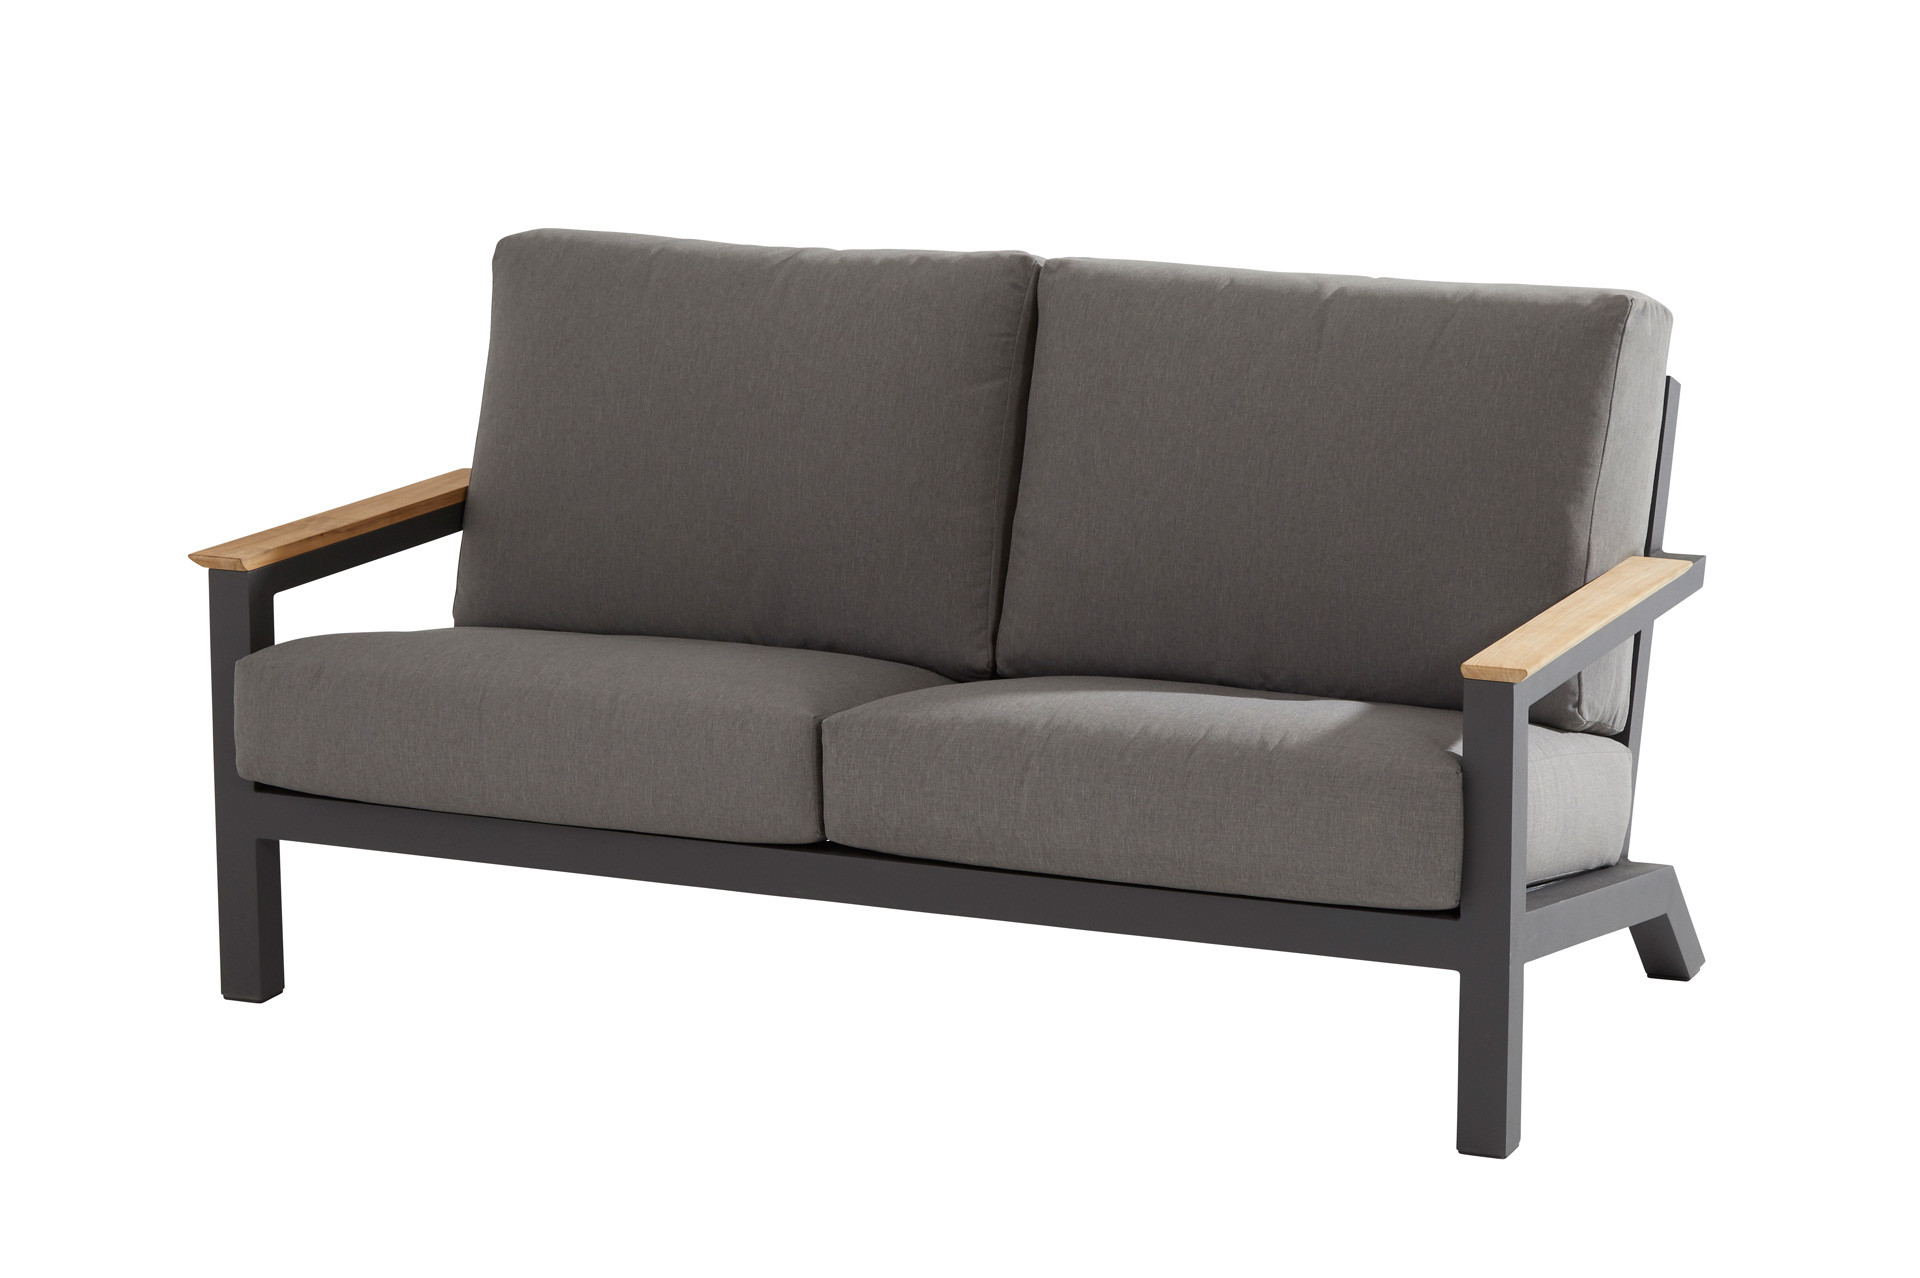 Capitol living bench 2.5 seater with 4 cushions Anthracite